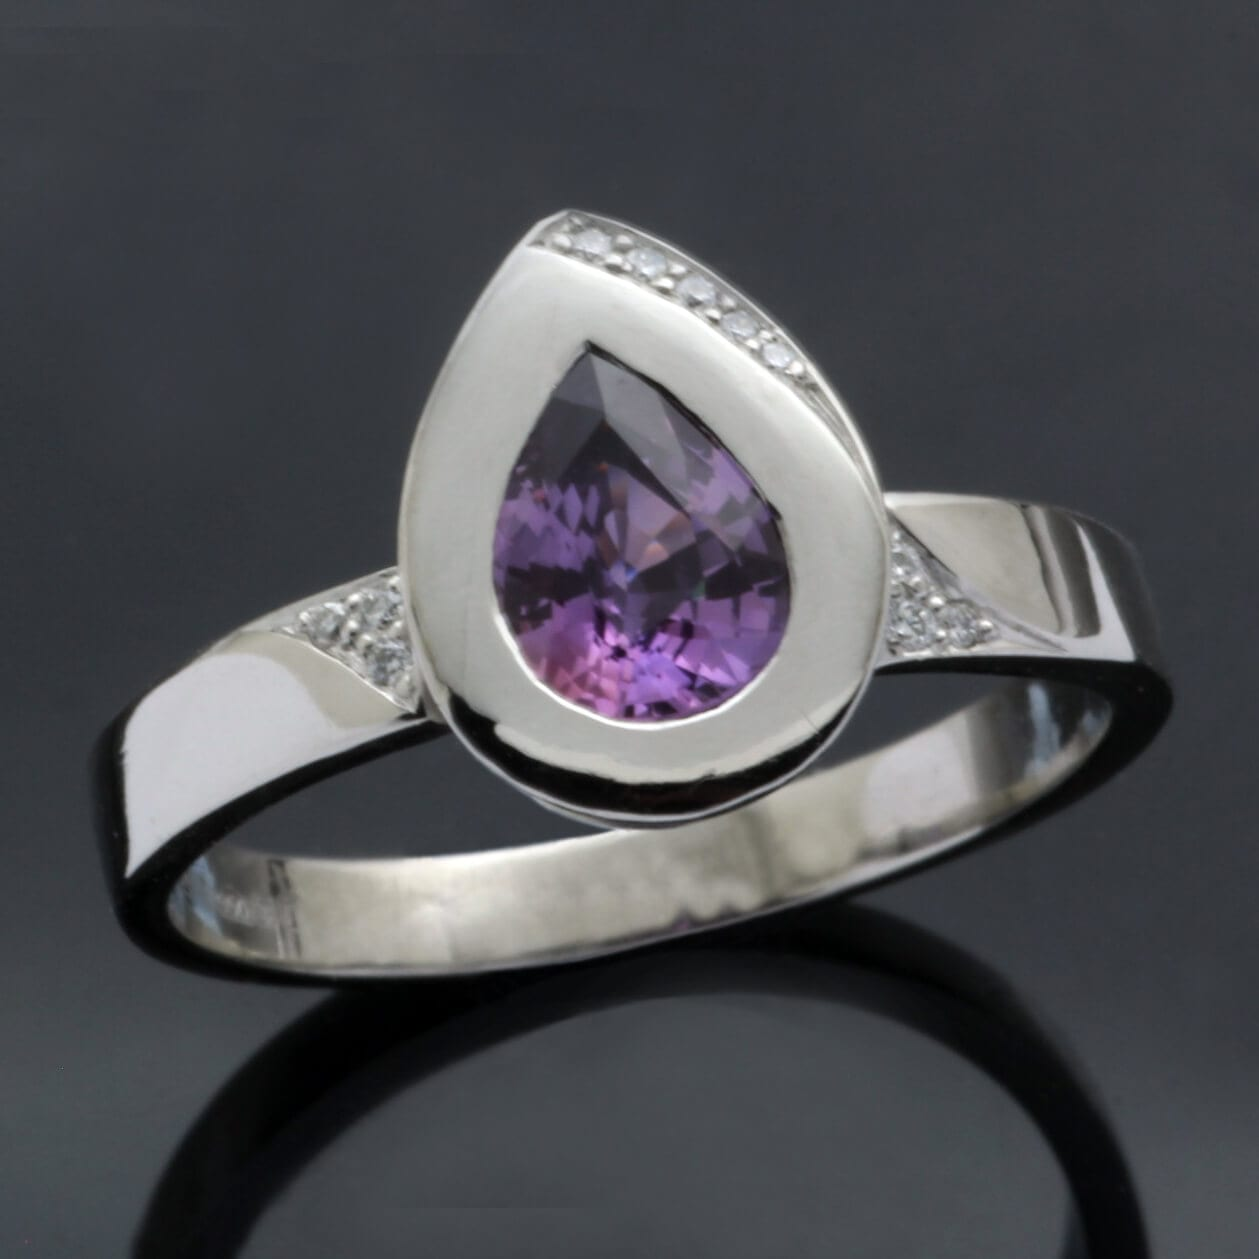 Pear cut Purple Sapphire gem solid Platinum stylish modern statement ring